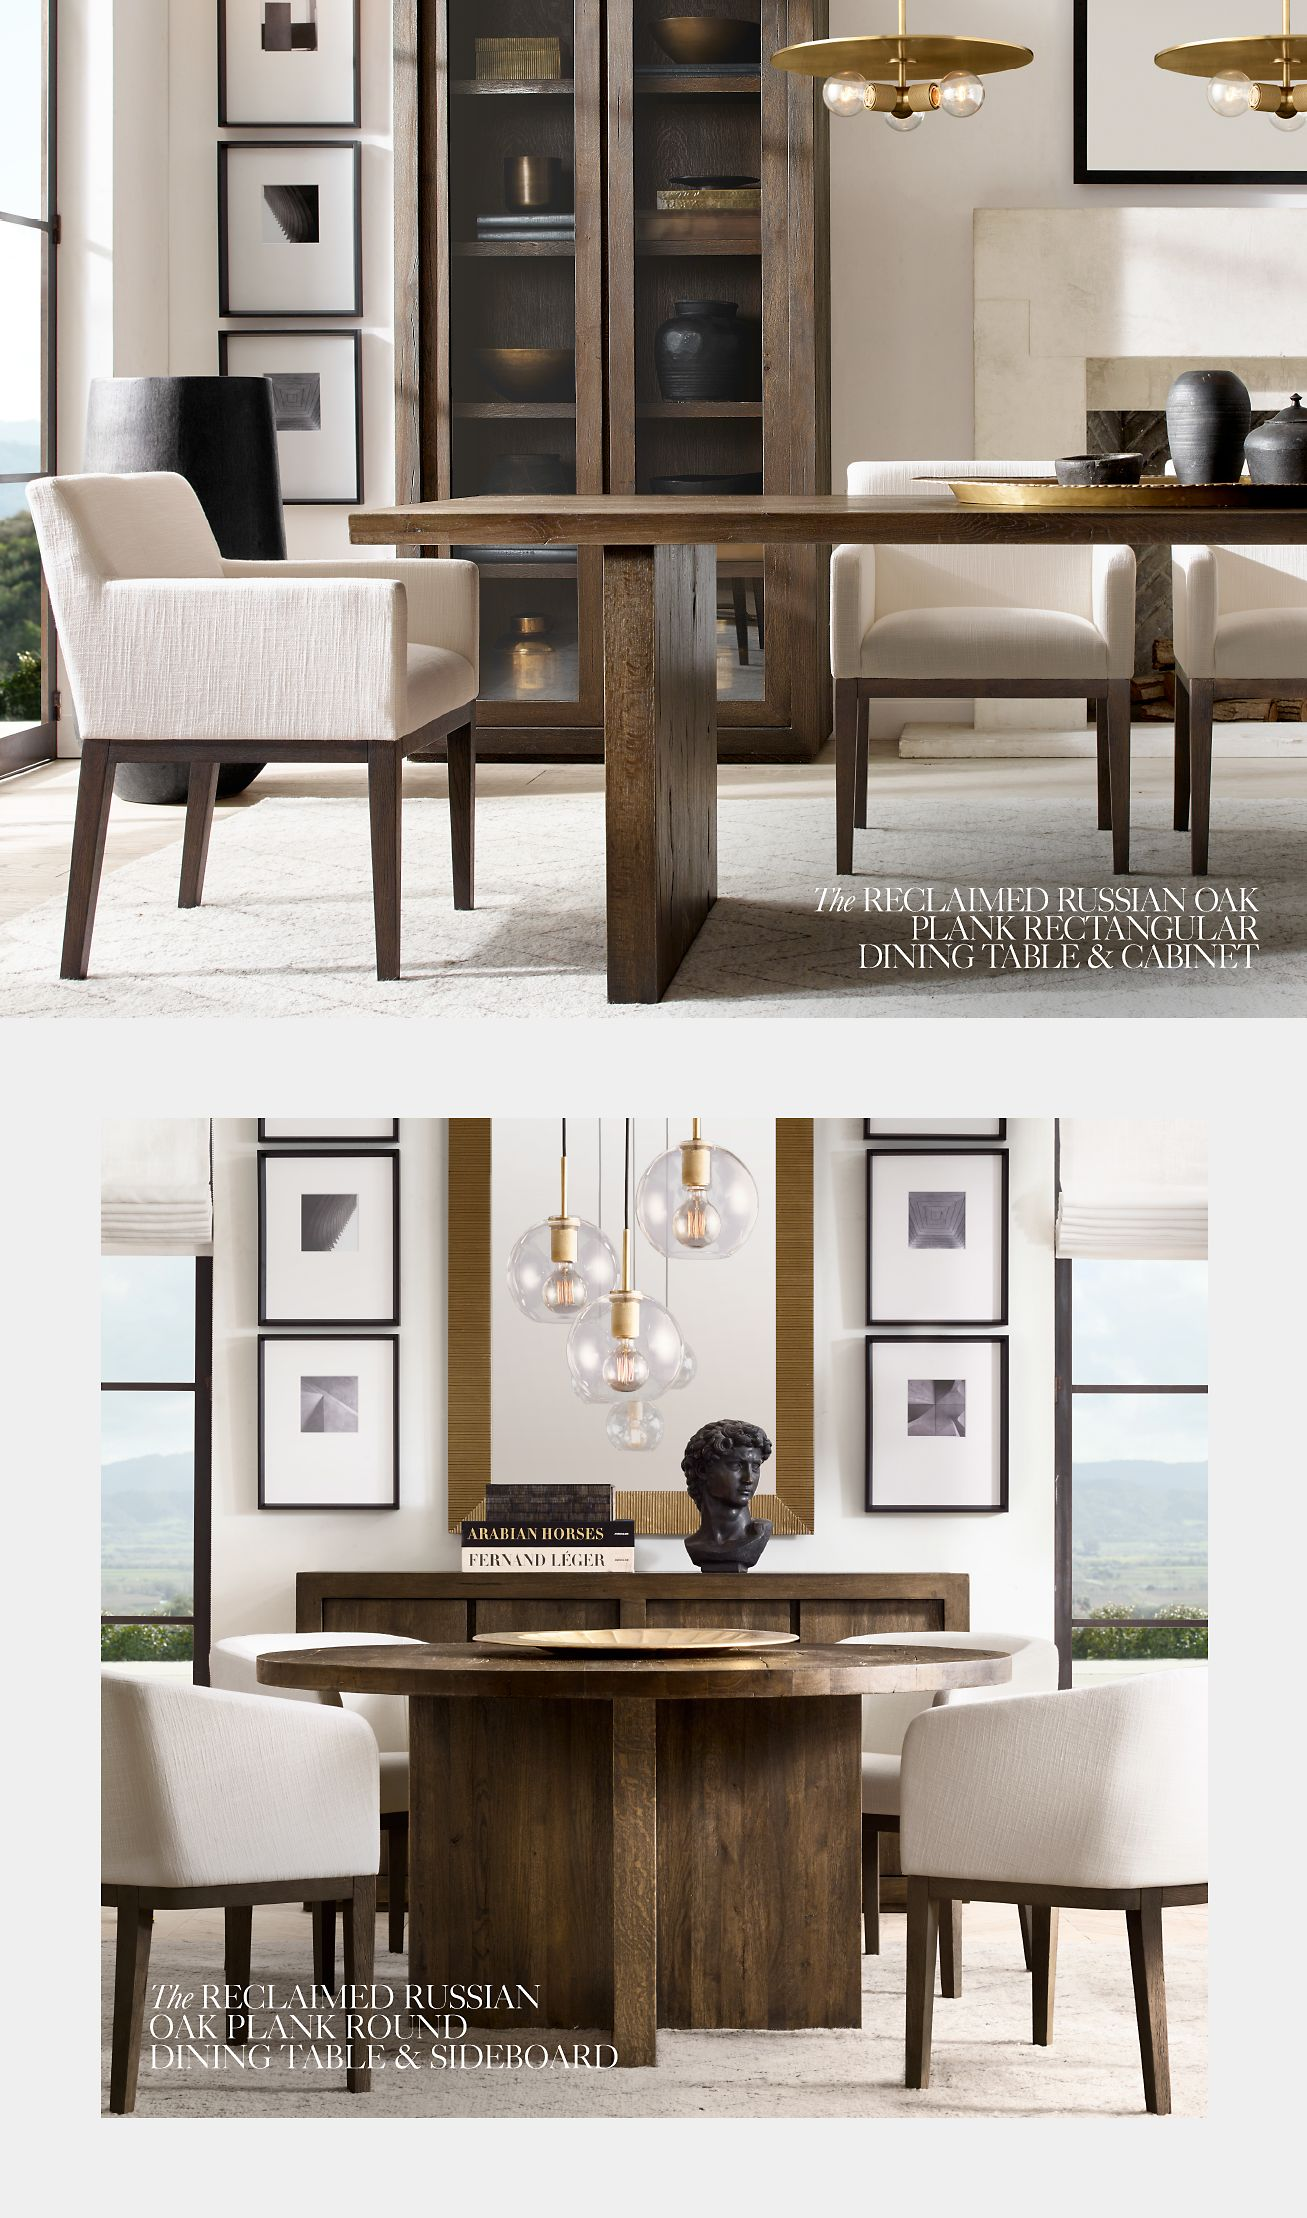 Restoration Hardware Save 25 On The Reclaimed Russian Oak Collection As An Rh Member Milled